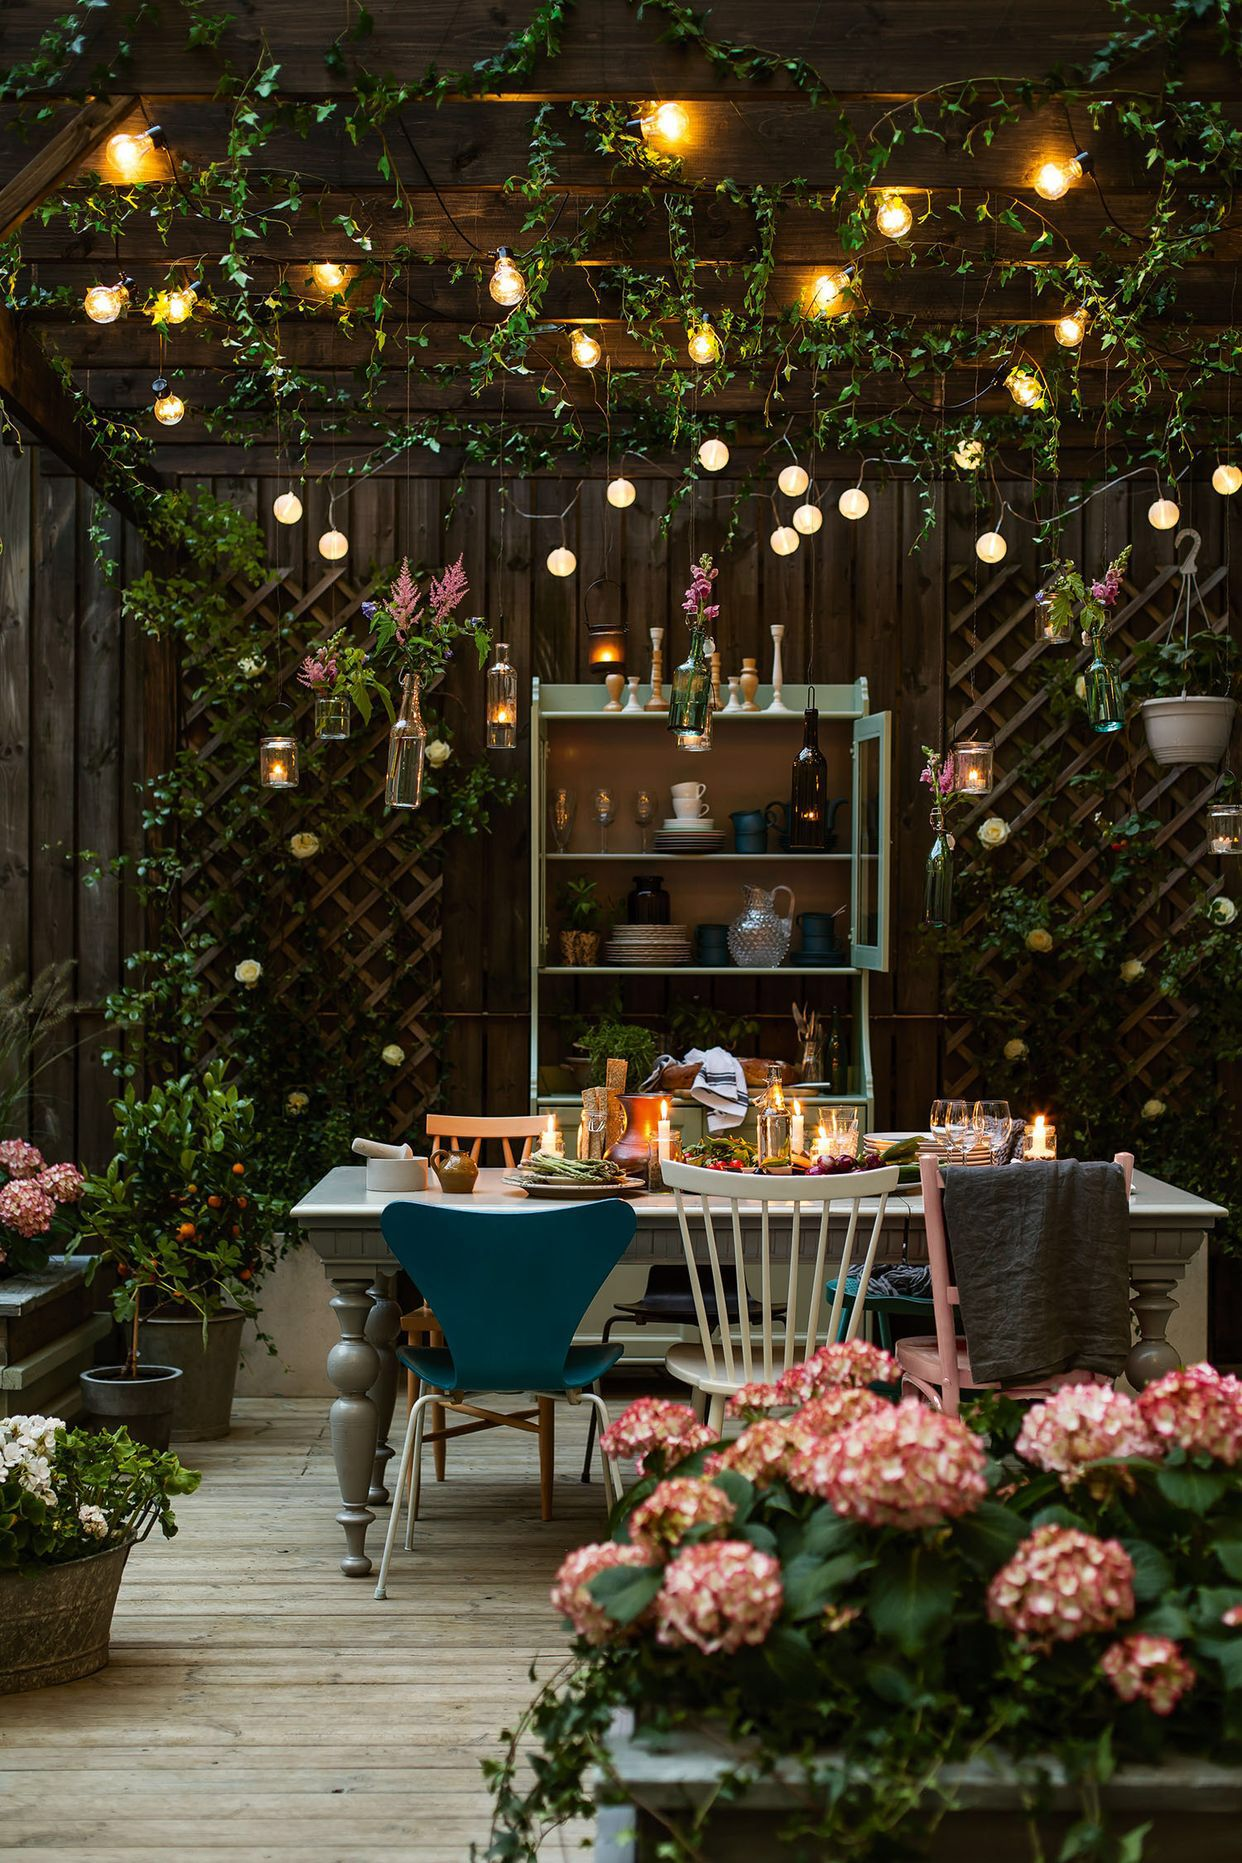 Loving the decor in this outdoor patio! | Just WOW | Pinterest ...